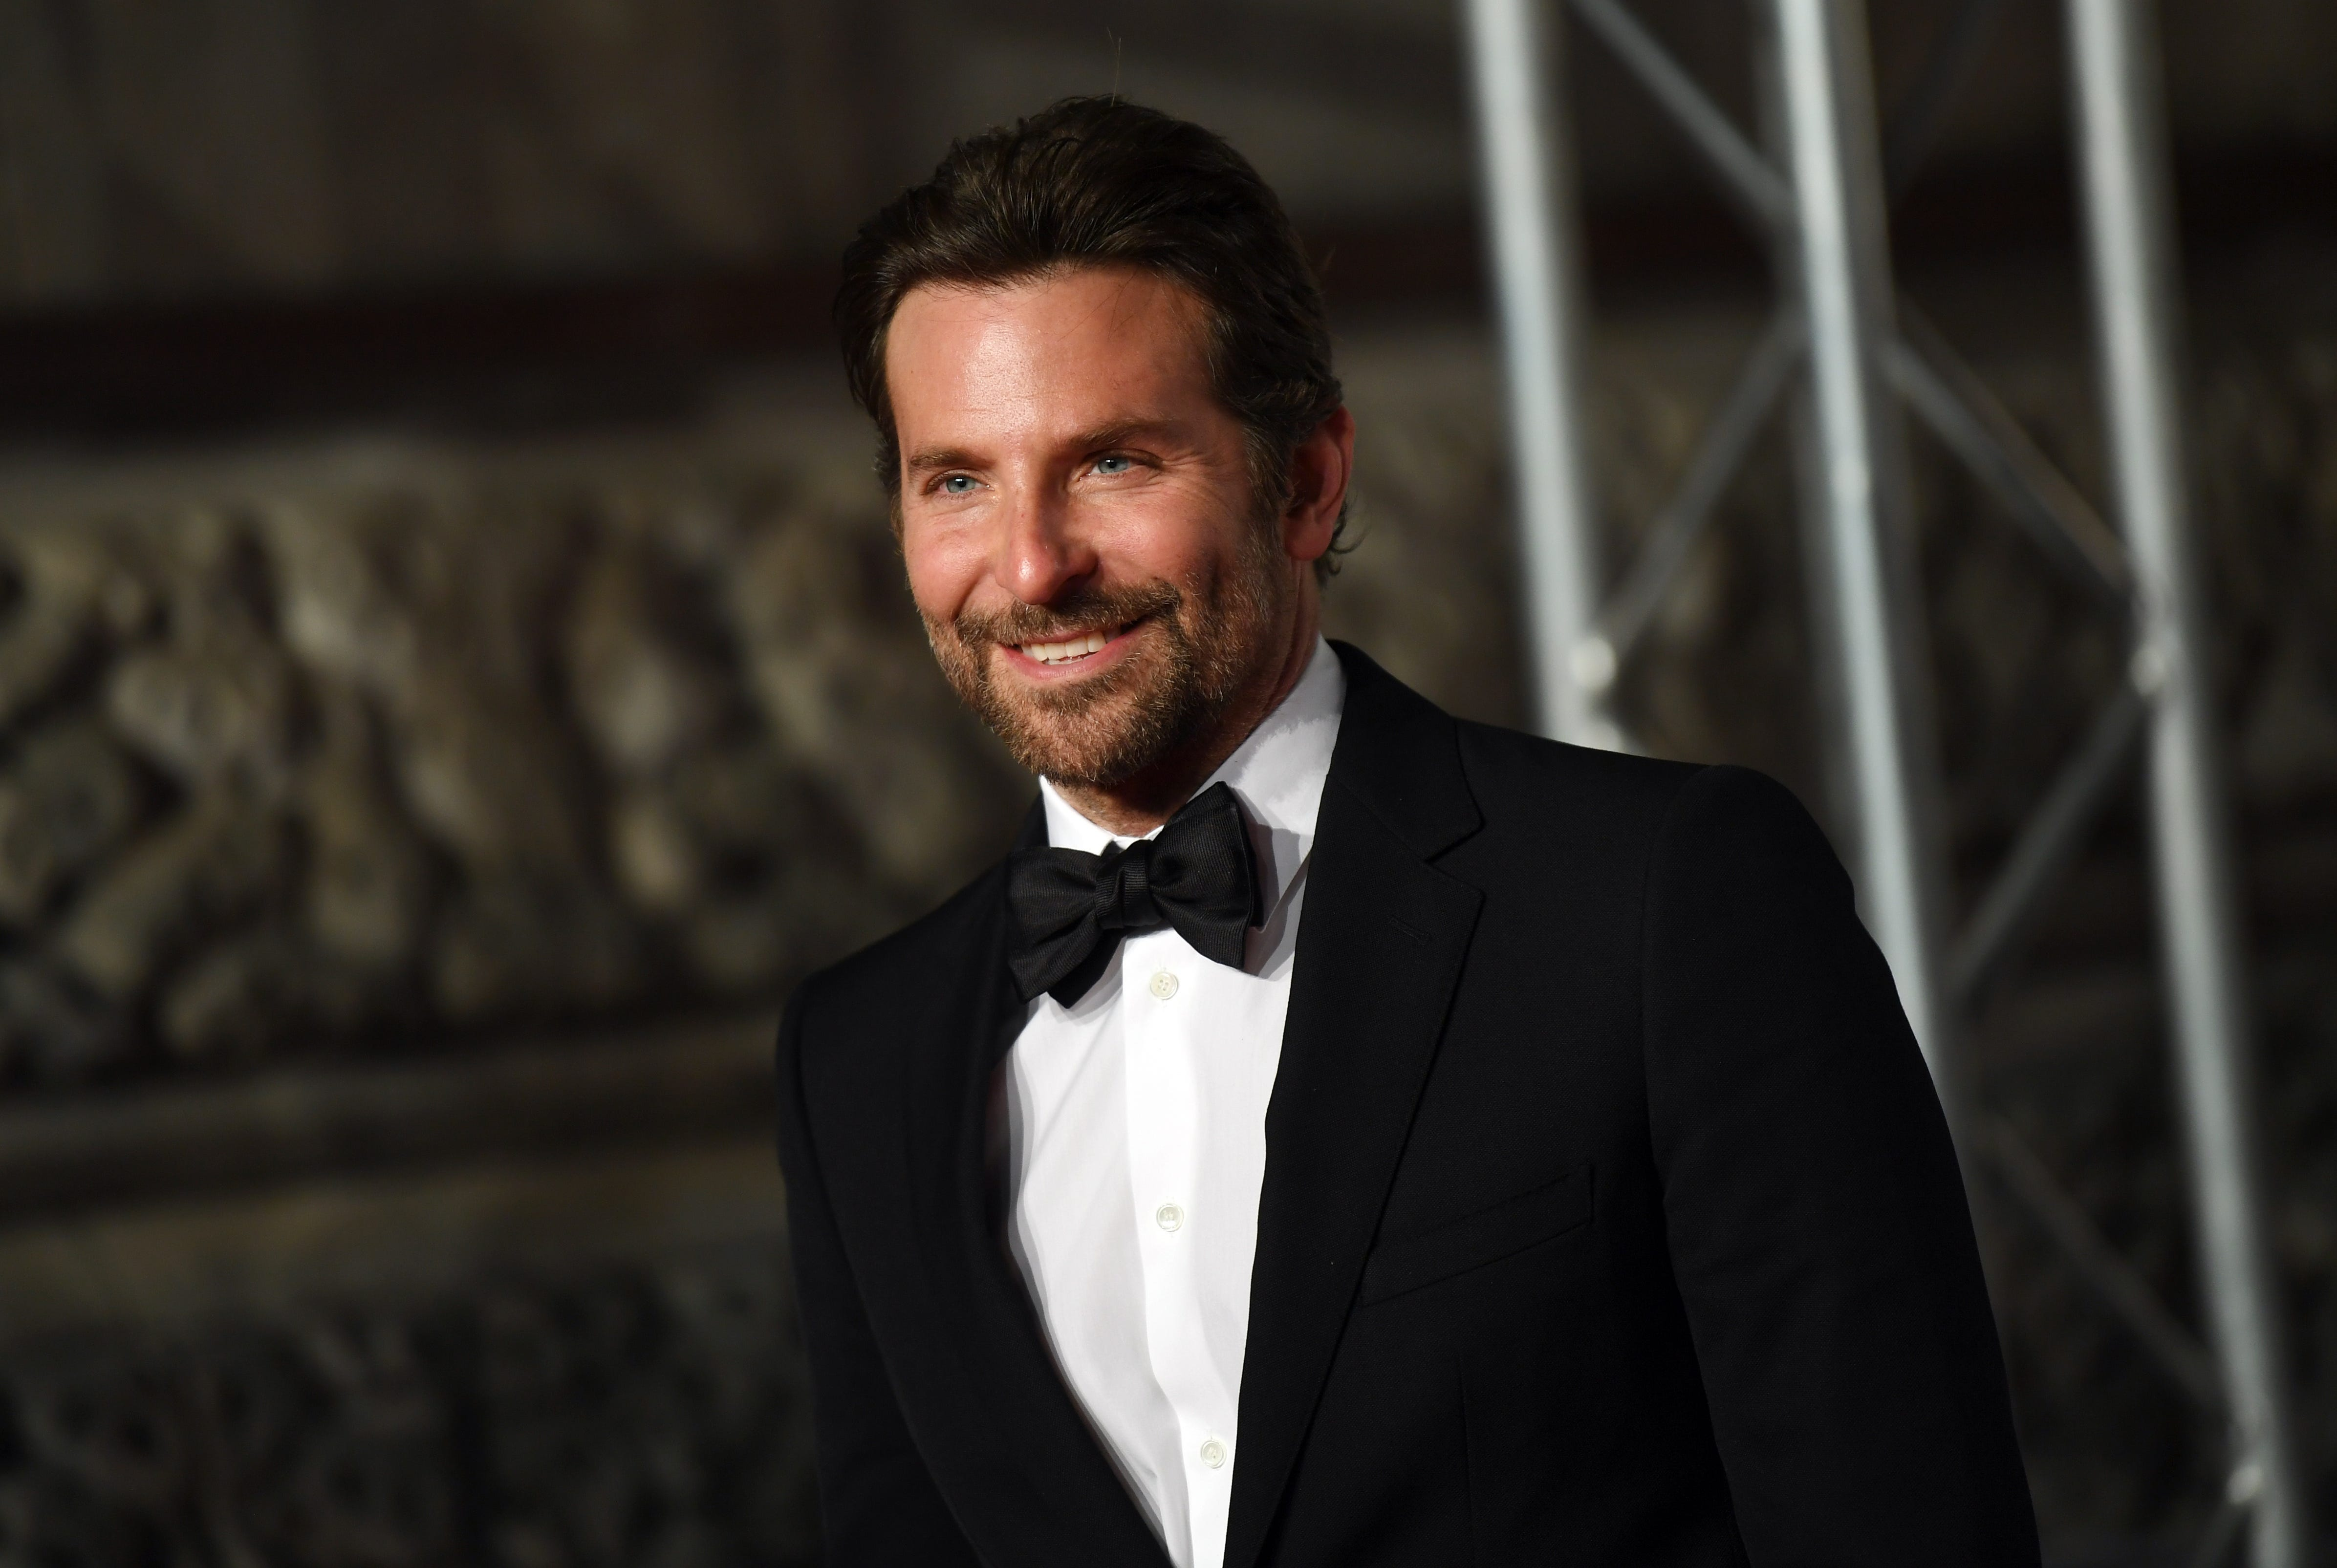 Bradley Cooper thanks girlfriend at BAFTAs: 'I also need to thank Irina for putting up with me'